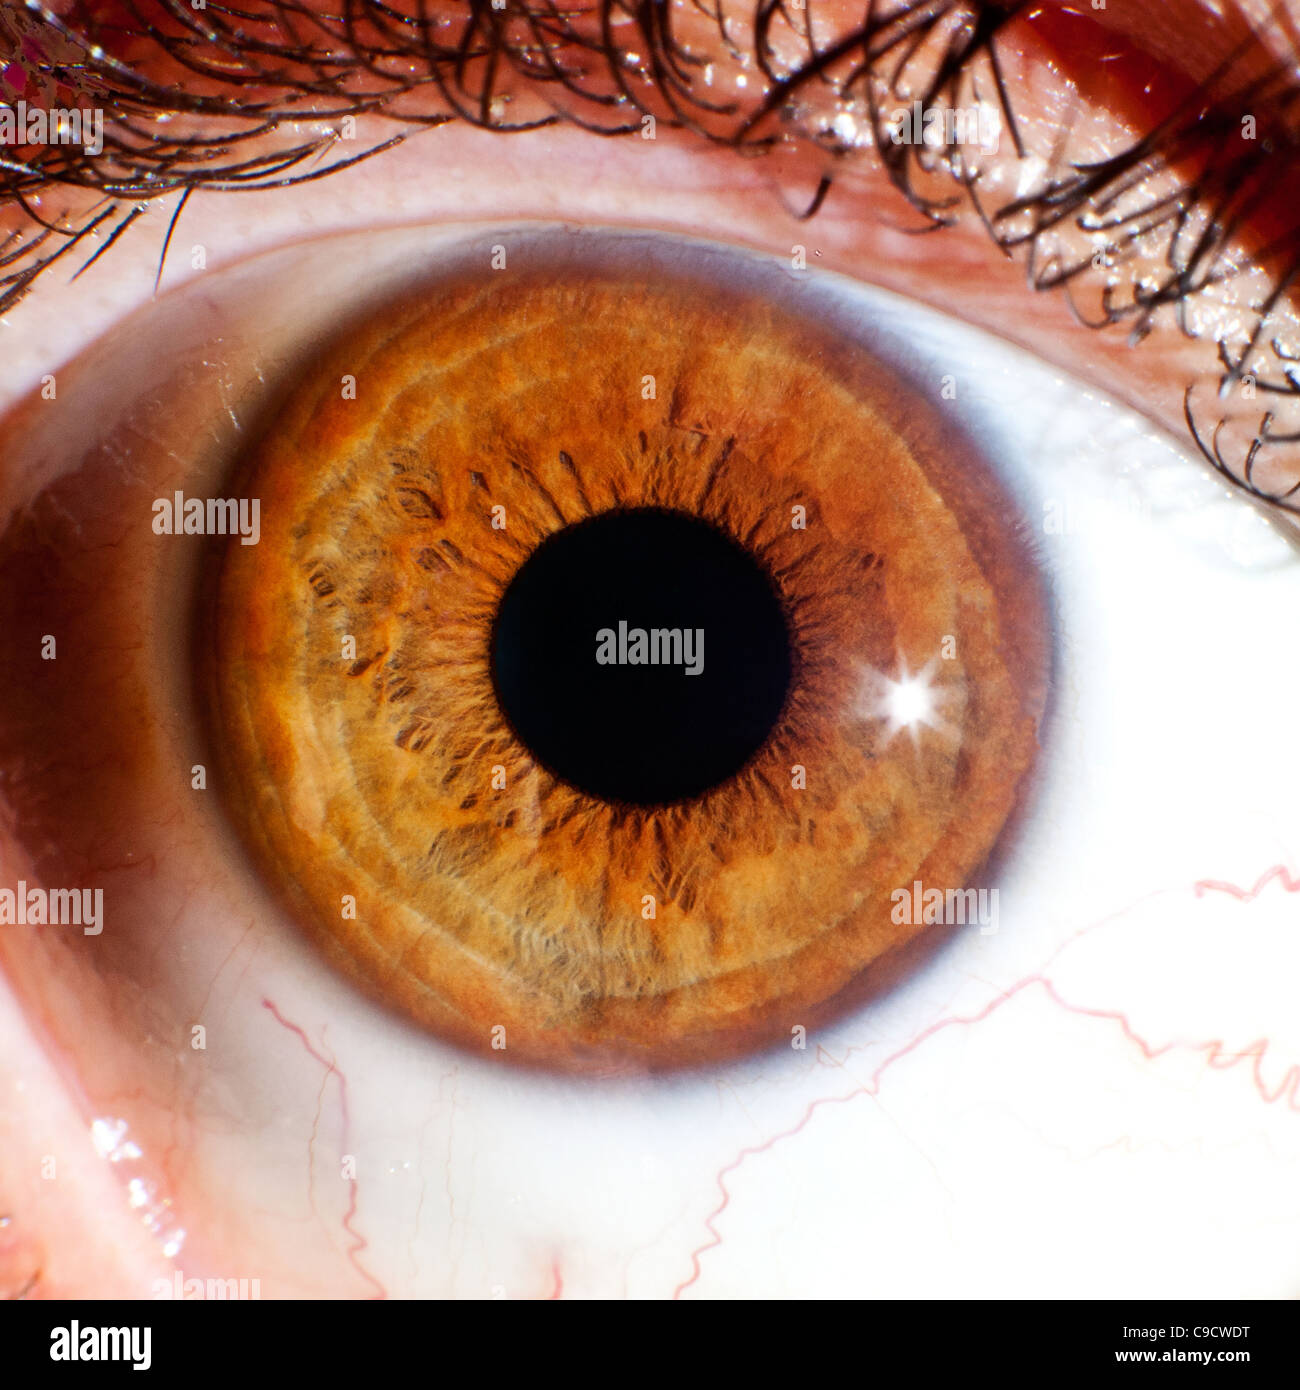 close up macro of eye ball iris and pupil - Stock Image